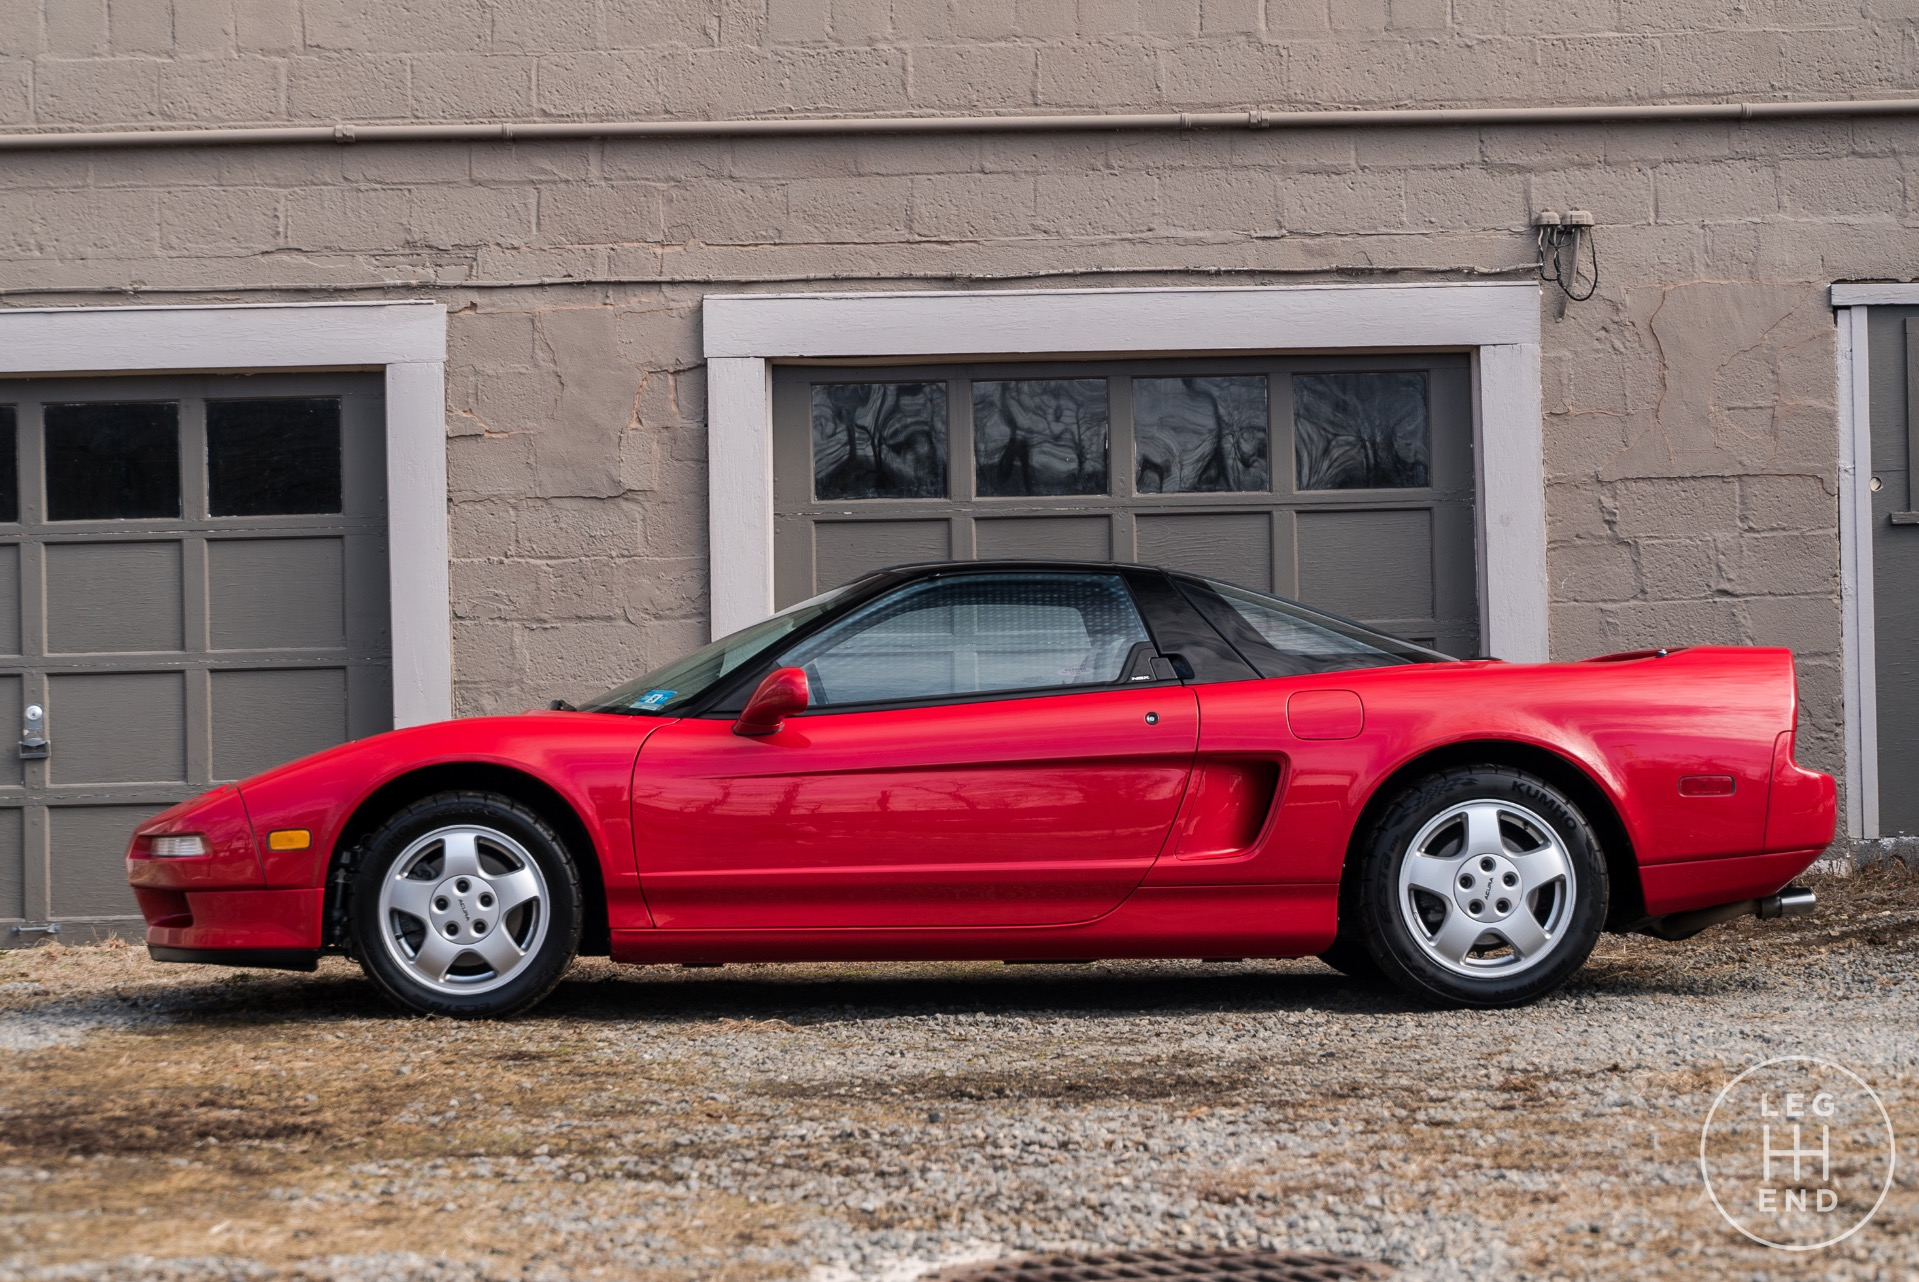 used 1991 acura nsx for sale carsforsalecom - HD1919×1282